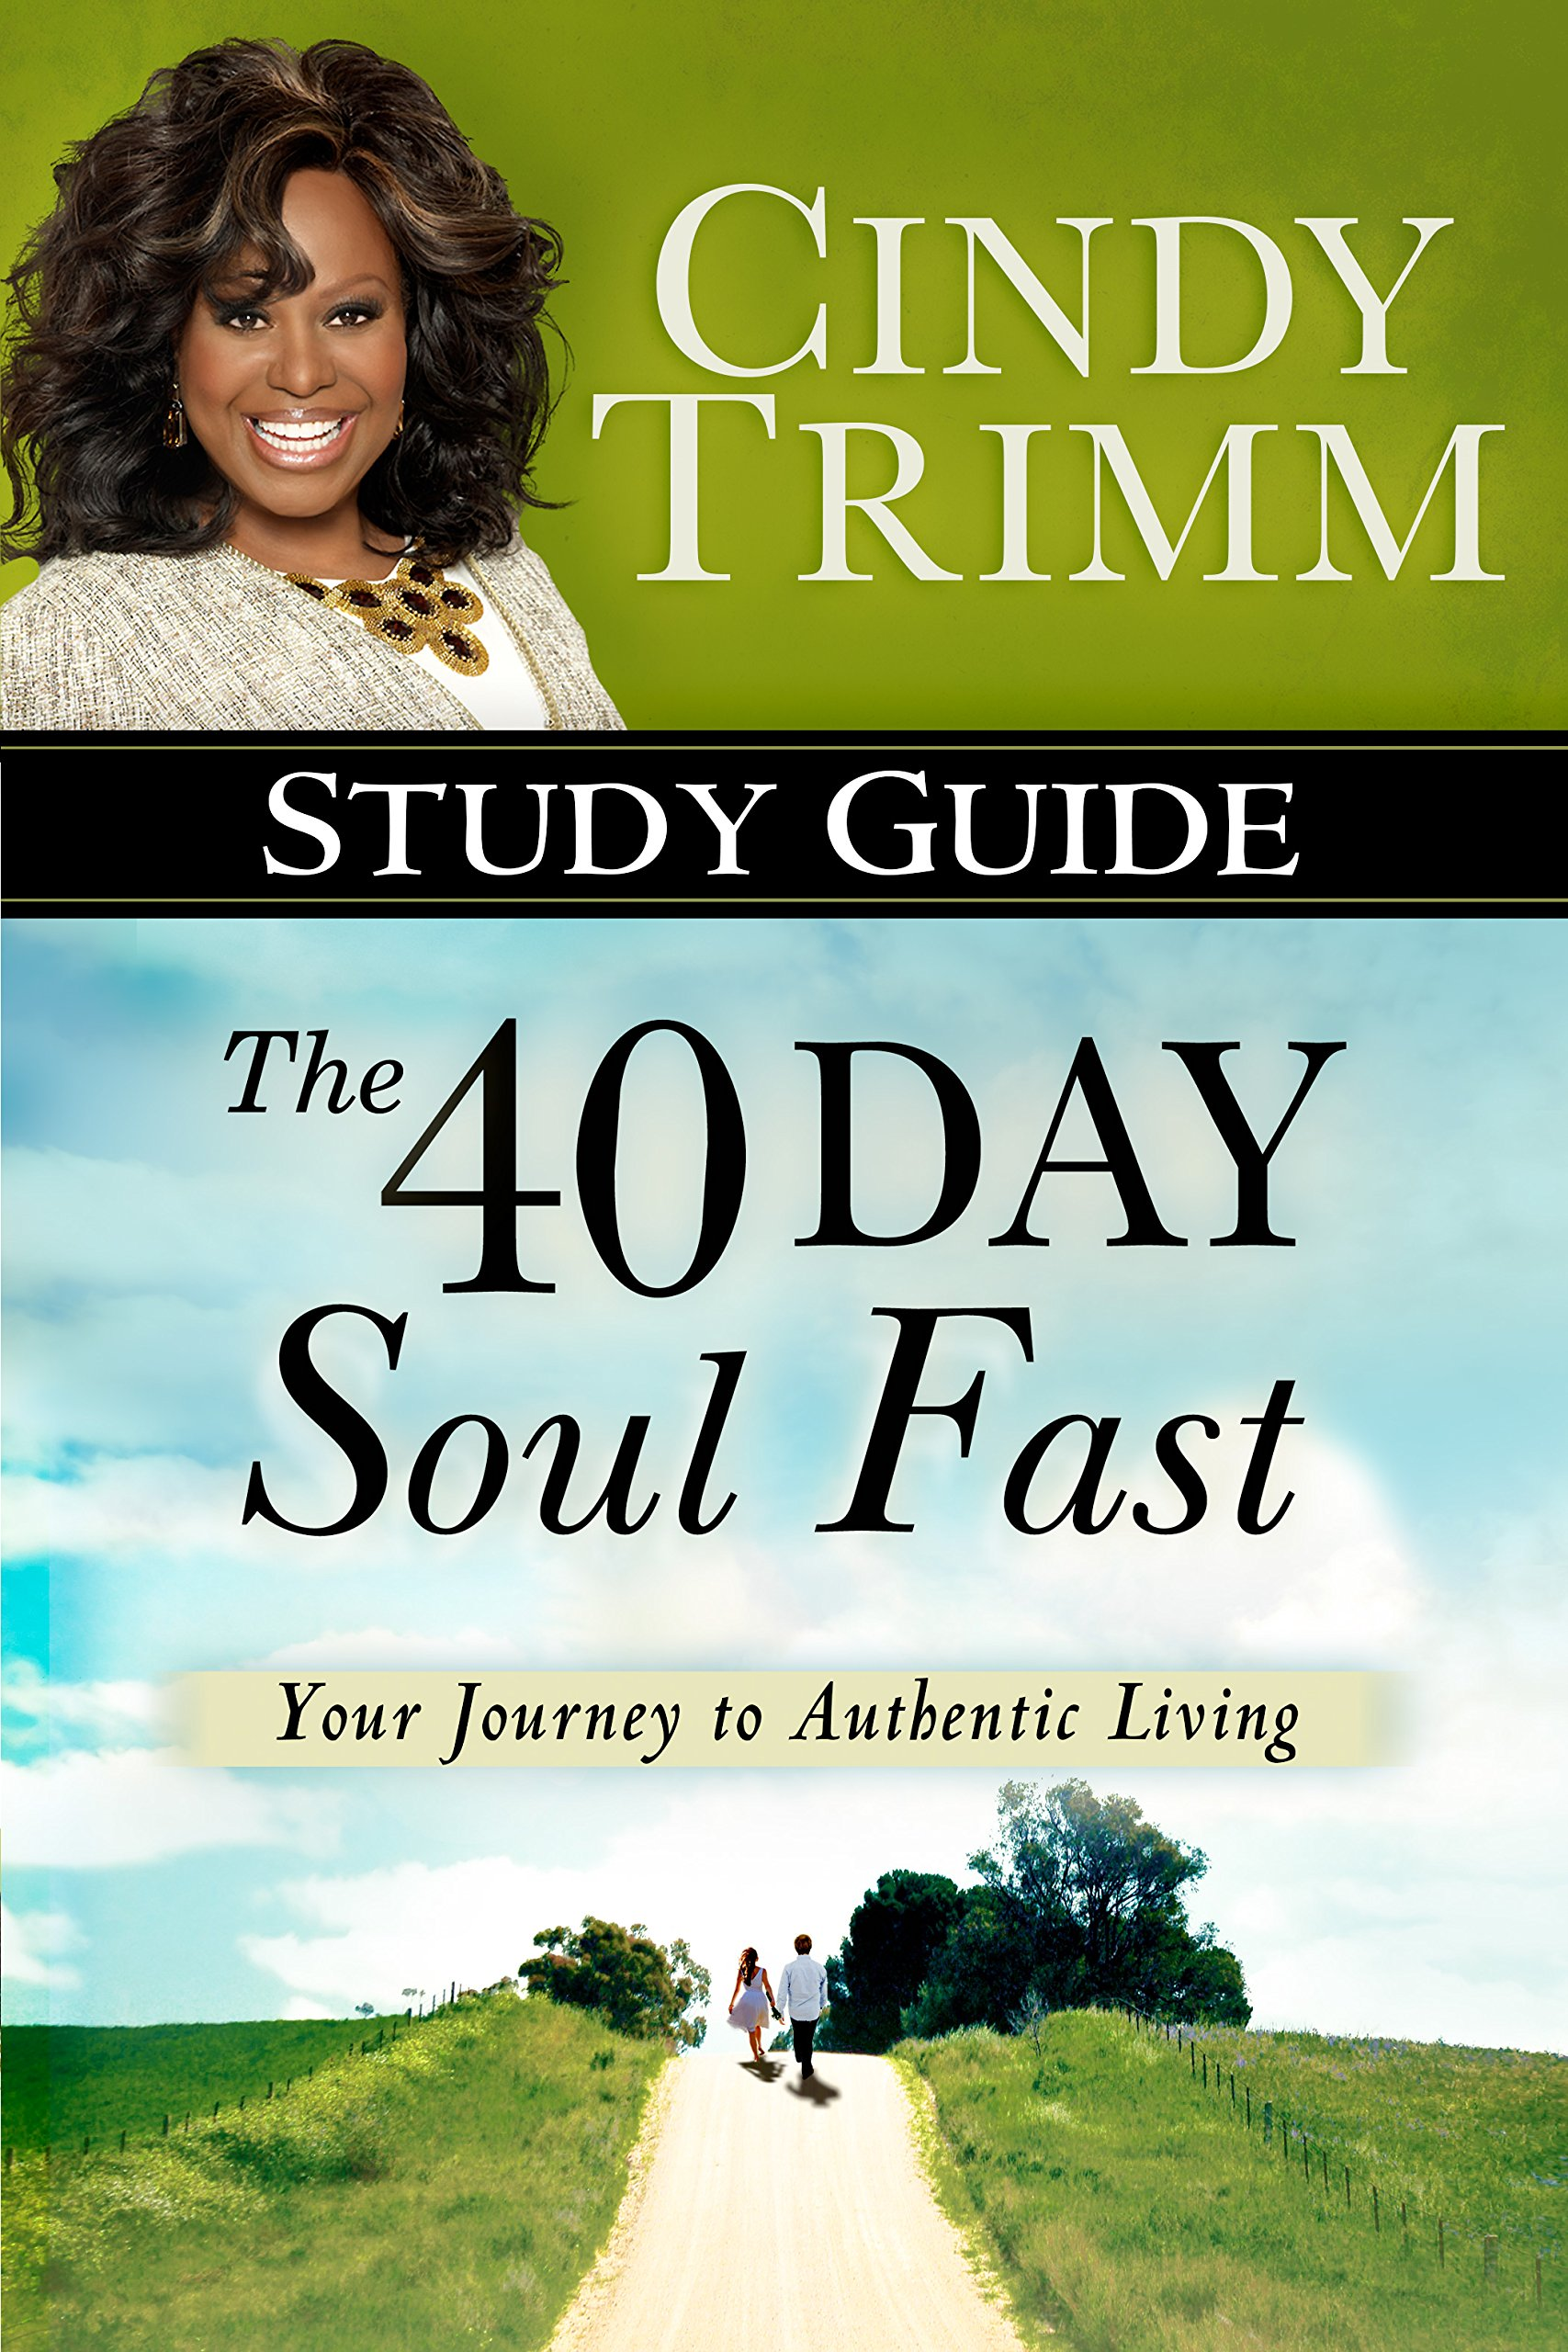 The 40 Day Soul Fast Study Guide: Cindy Trimm: 9780768408720: Amazon ...